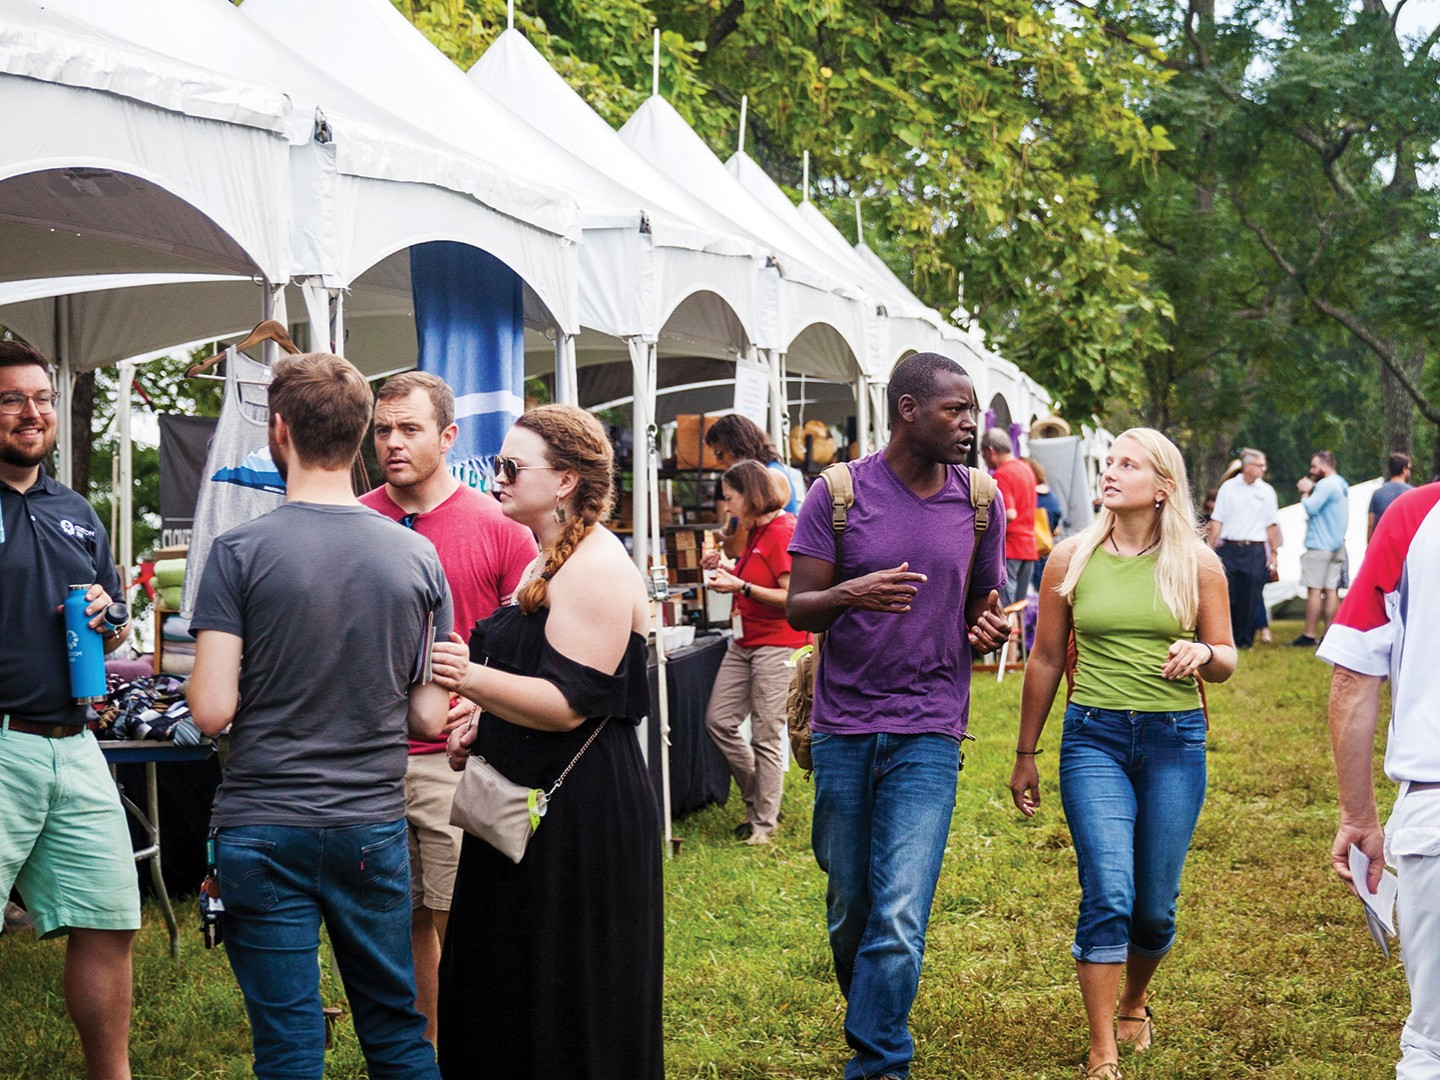 Groups of young people outside a row of tents at the Heritage Harvest Festival.